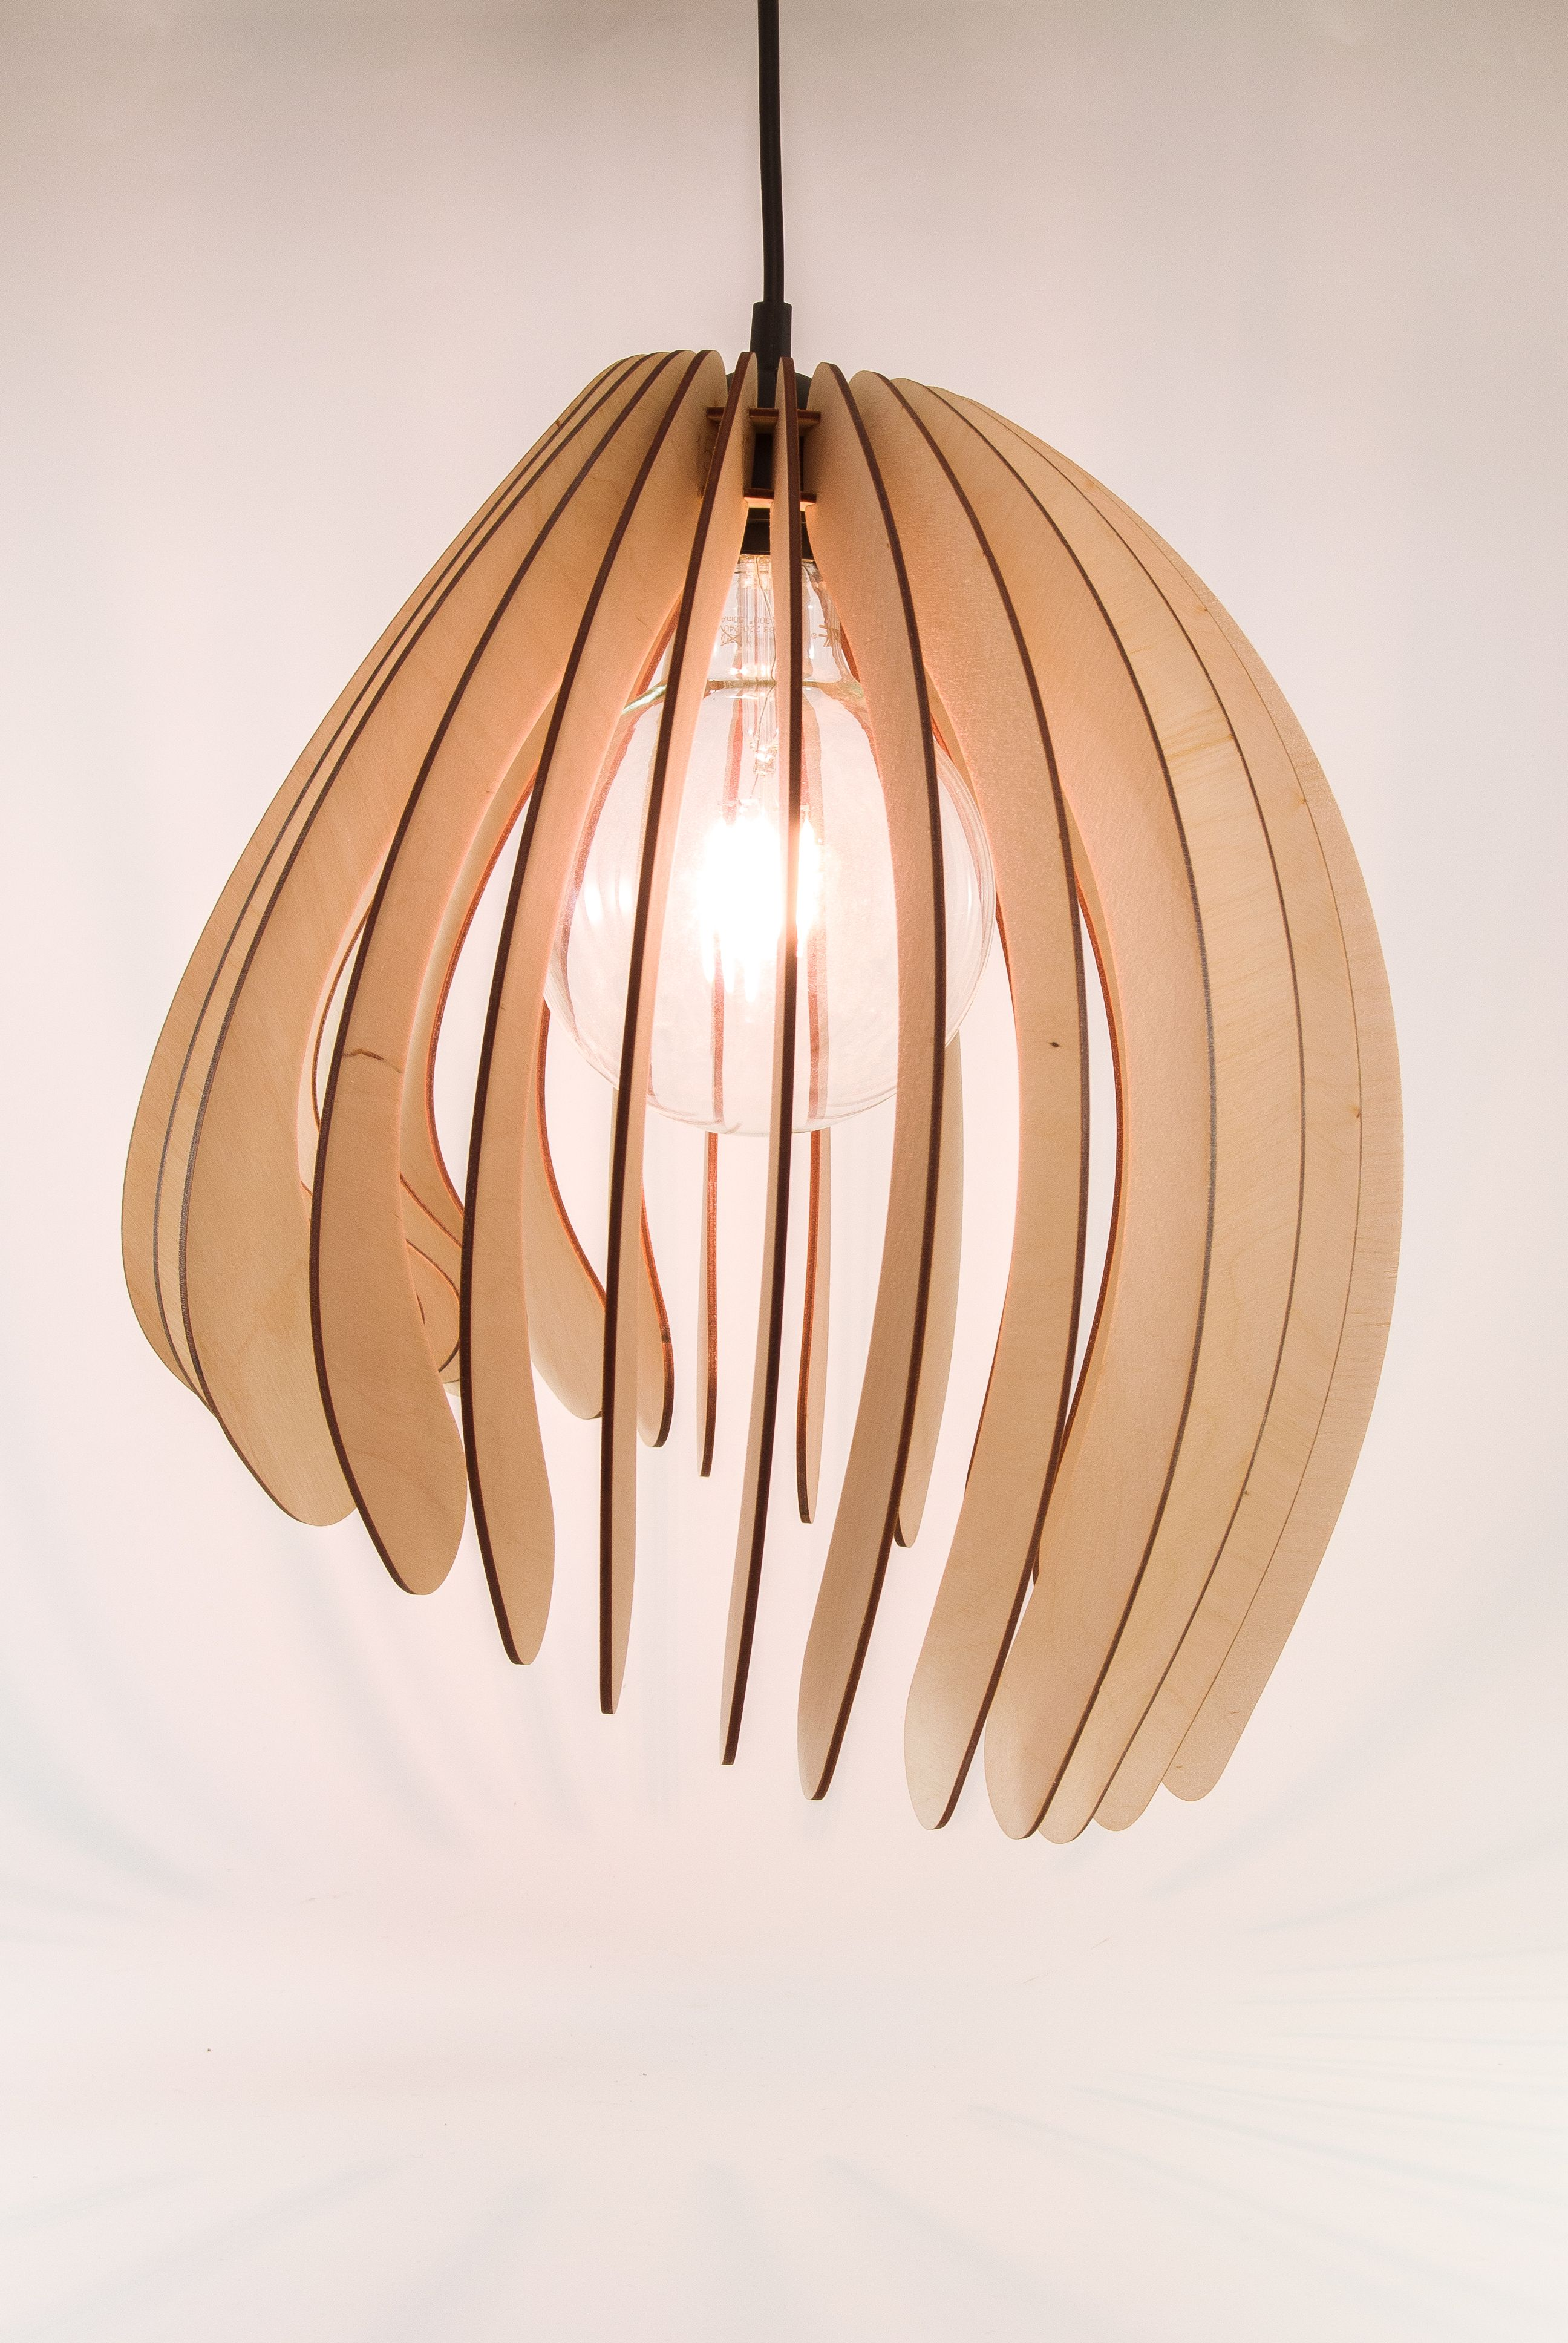 This Amazing Modern Minimalist Wooden Pendant Light Is A Great Choice For Your Living Room Bedroom Or Dining Roo Wooden Lampshade Wooden Lamp Wall Lamp Shades